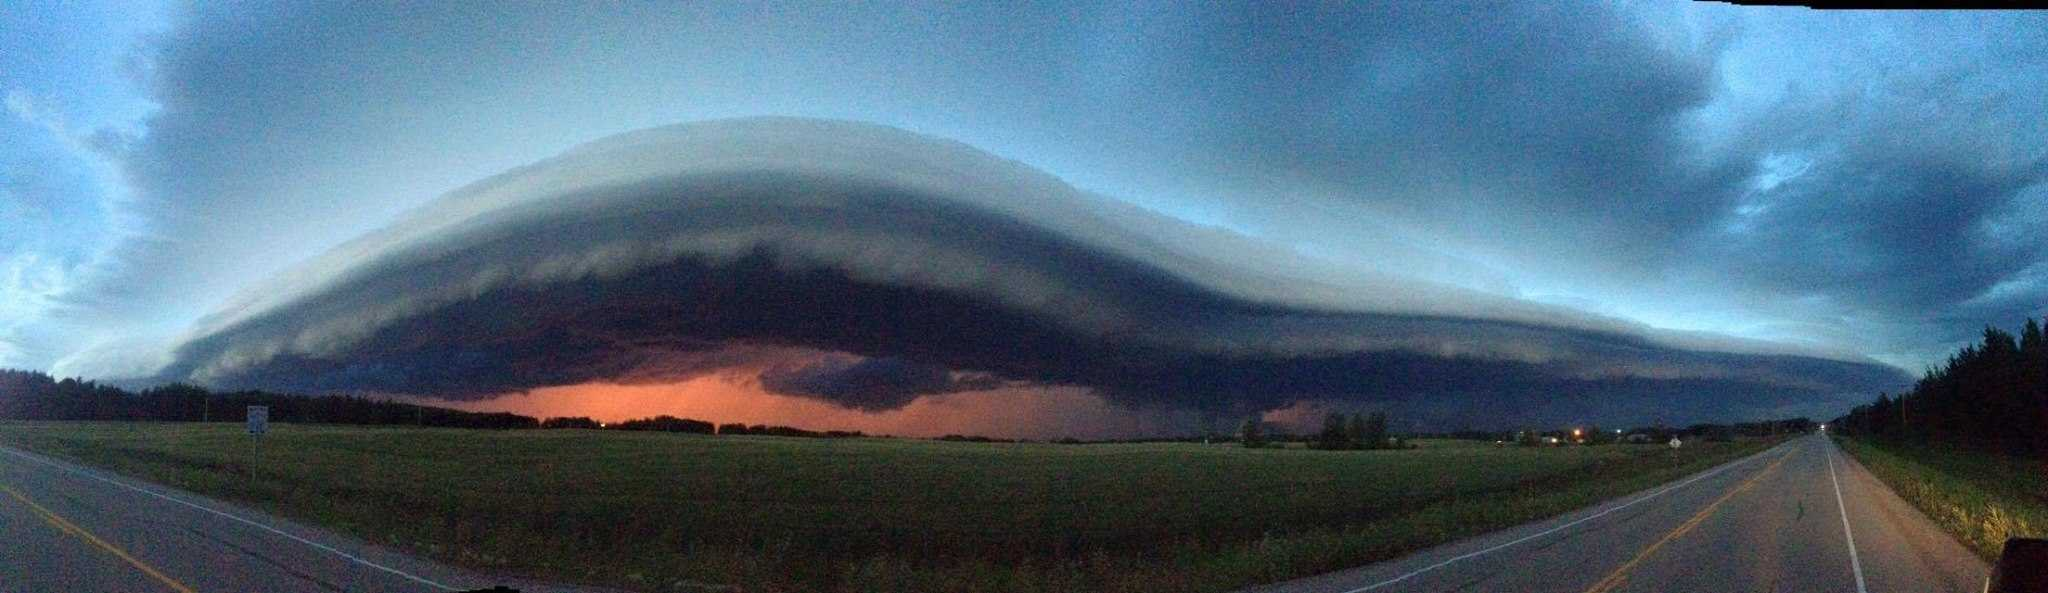 Pano of shelf cloud that swept across west central Alberta, Canada last night. Such a beautiful sky!